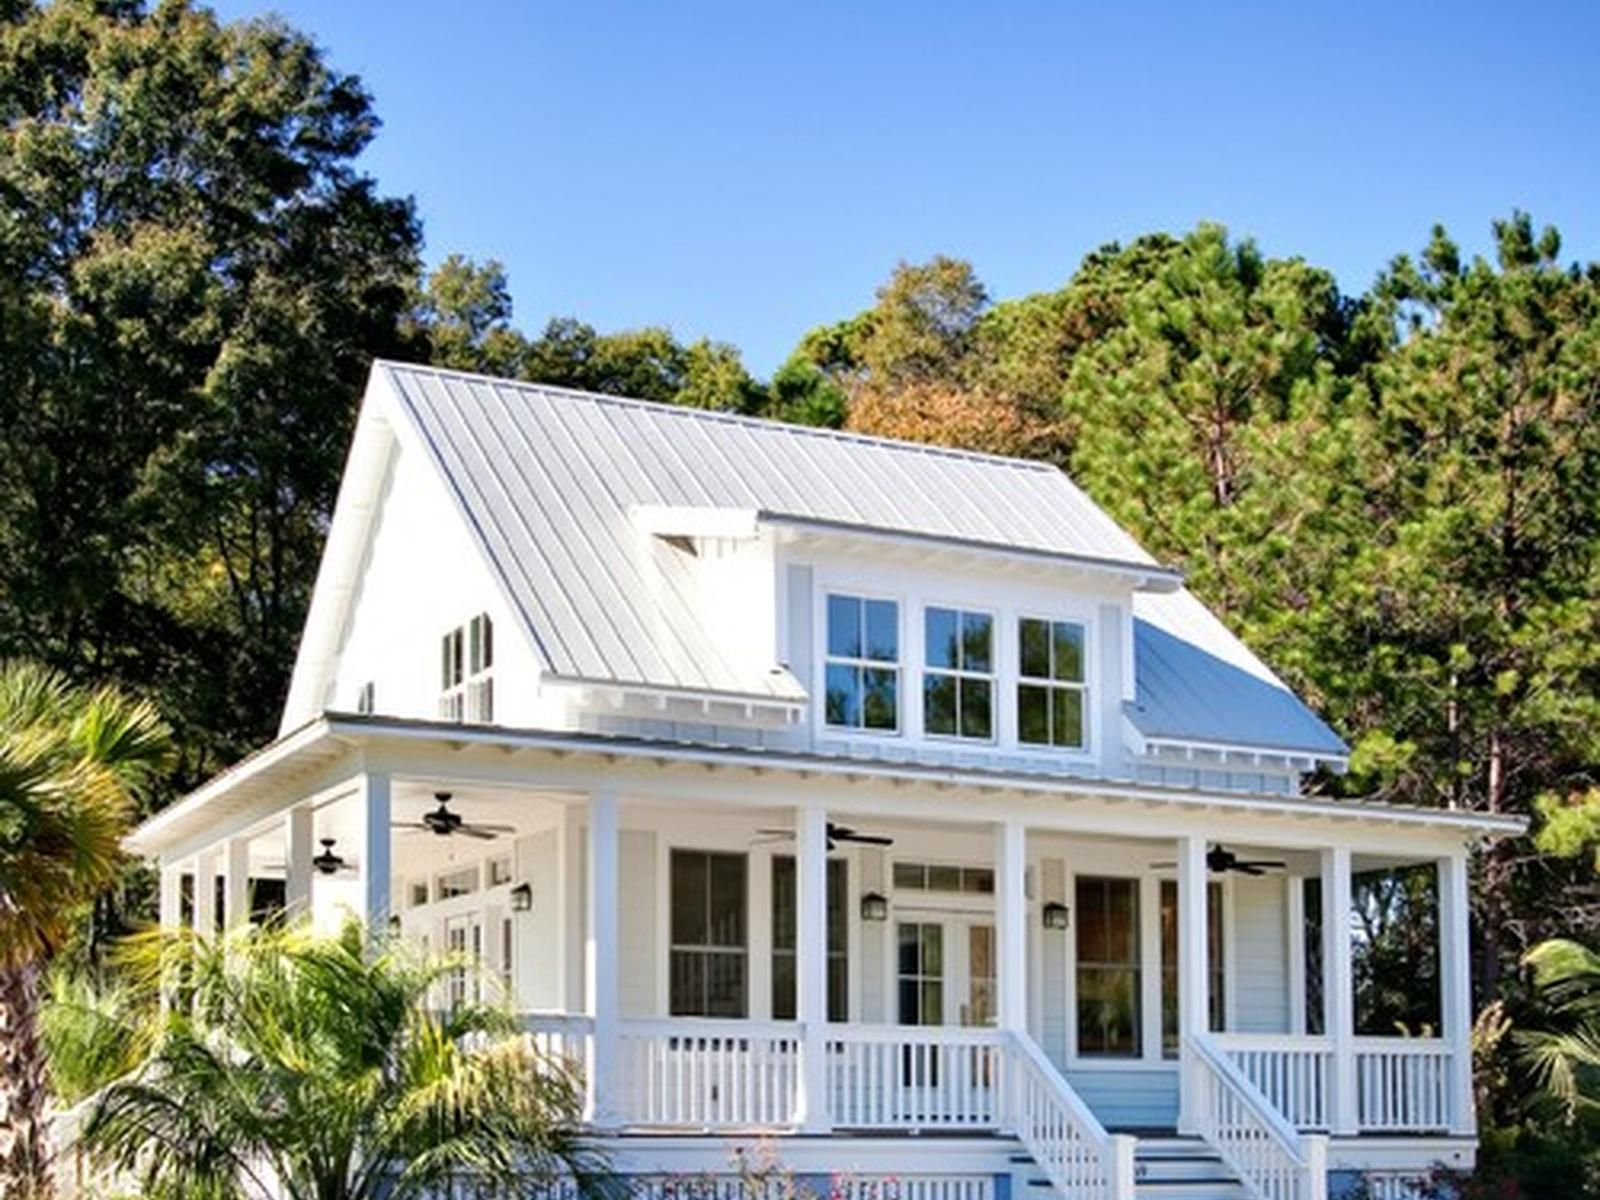 White house with tin roof and wrap around porch | House ...